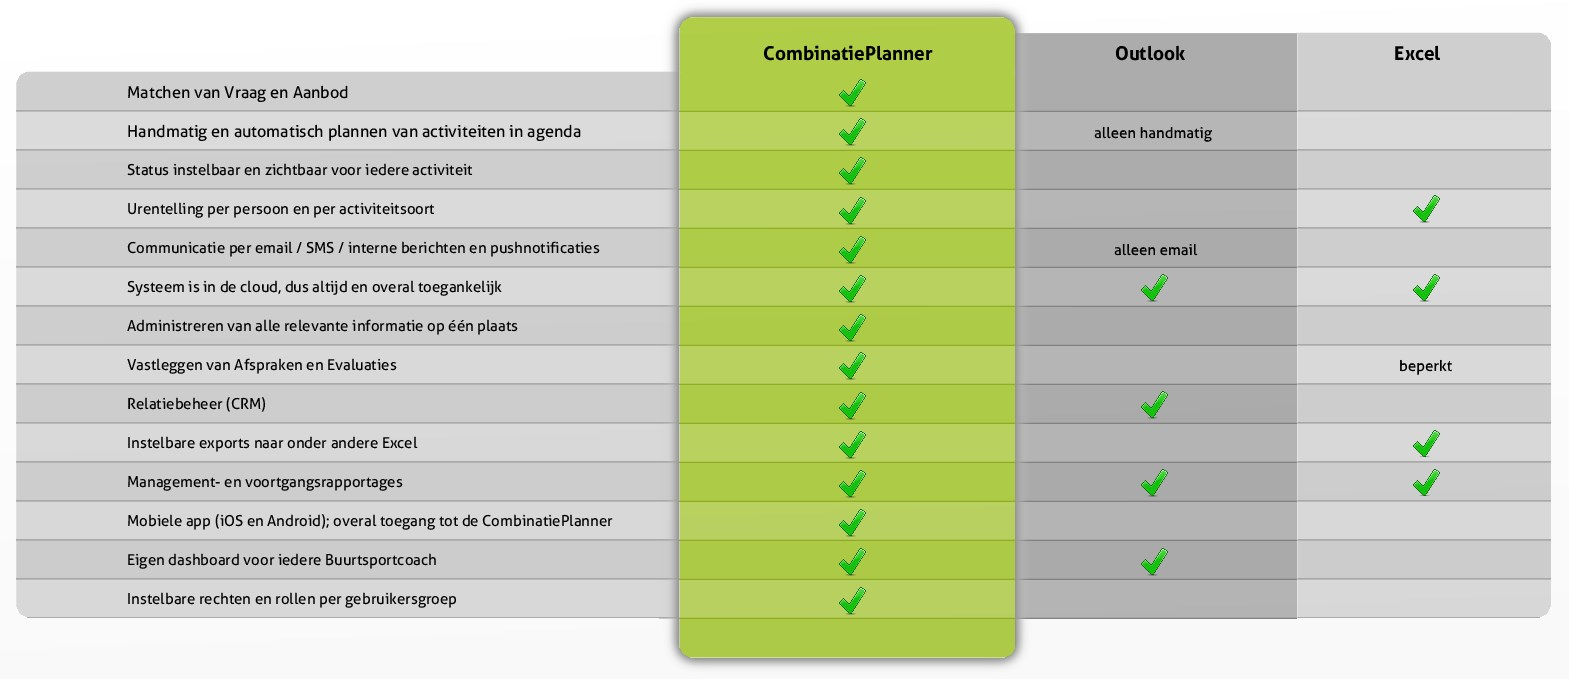 CombinatiePlanner functionaliteiten vergeleken met Outlook en Excel in een tabel